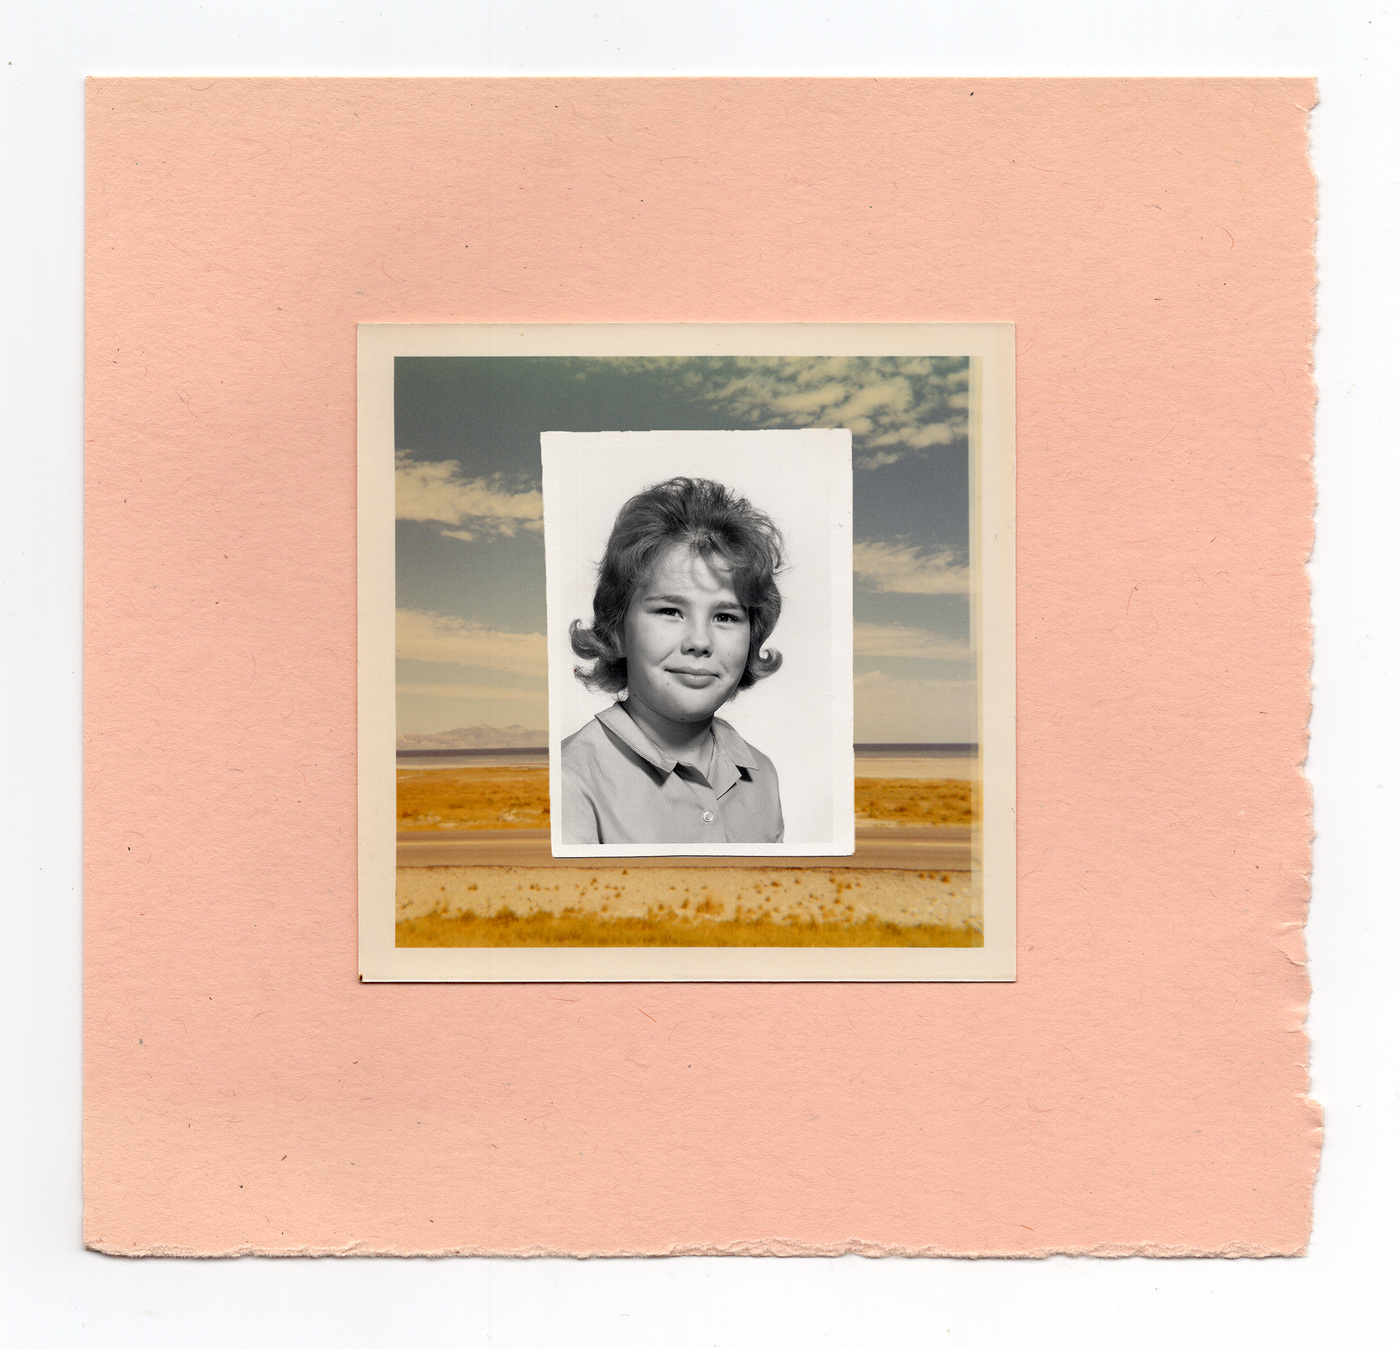 Brian Garbrecht - Ode to Mom 2020. Layered Family Archive on Paper.